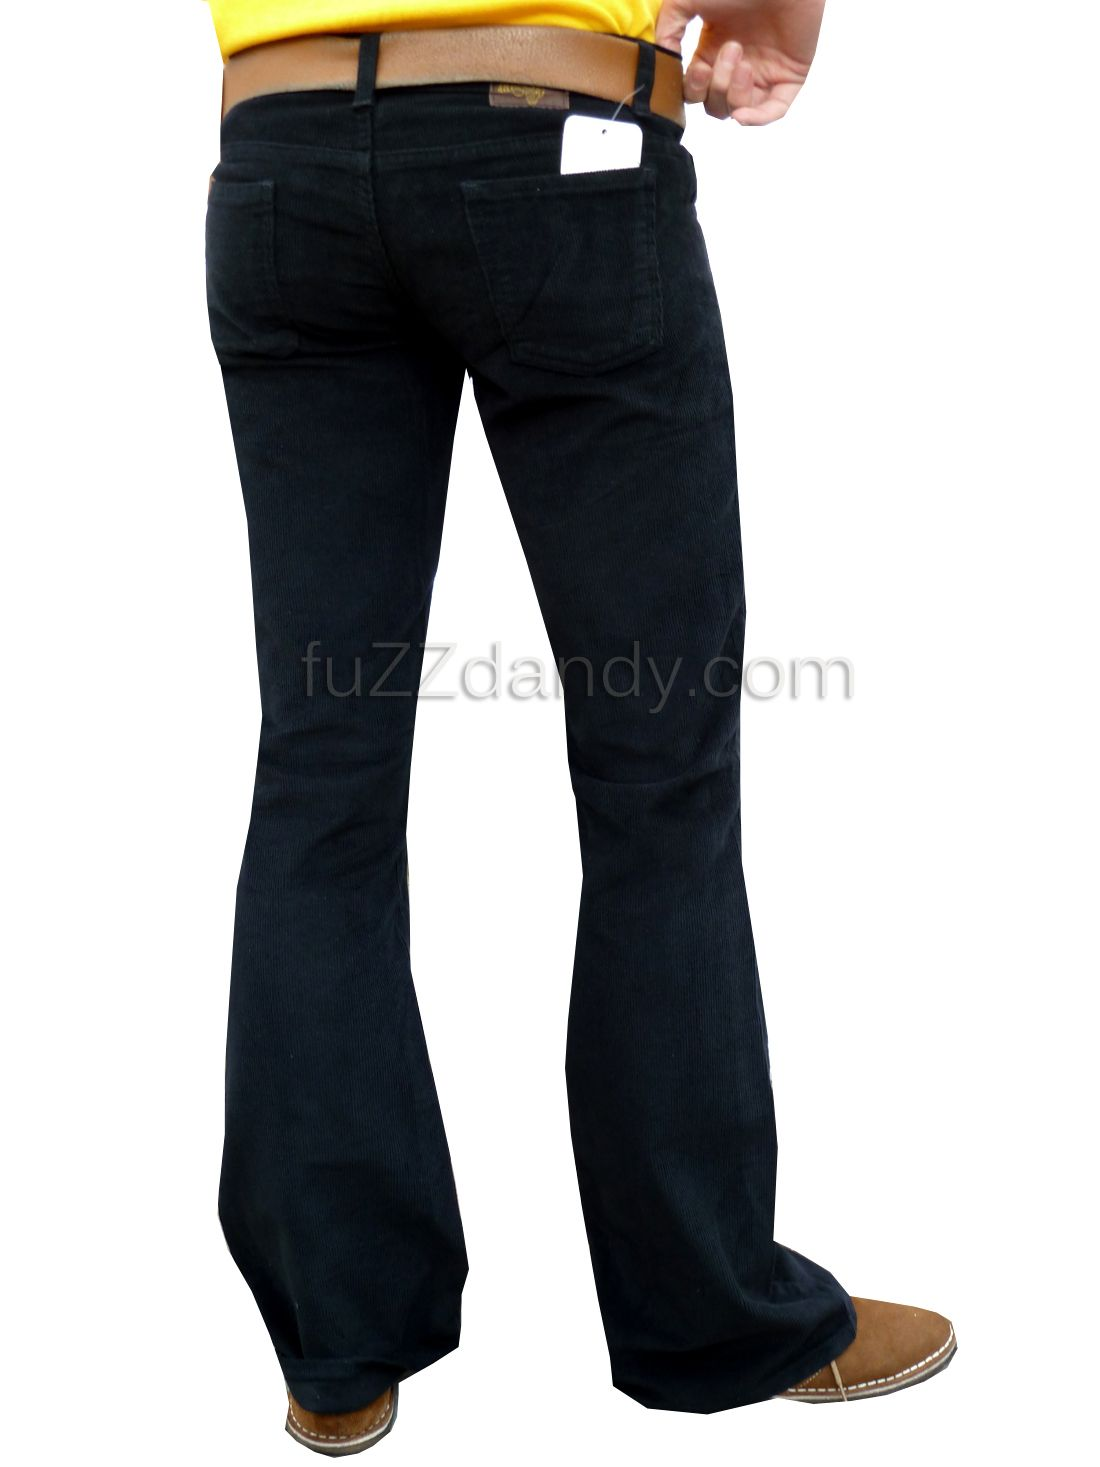 Super soft and stretchy cord in classic jeans styling with back pockets detailing, in a fitted boot cut. Style note: Shape up your tall wardrobe with a pair of boot cut cords. They look fantastic when styled with a basic tee and your favorite jacket. Fit, Fabric & Care Boot Cut Cord Pant/5(30).